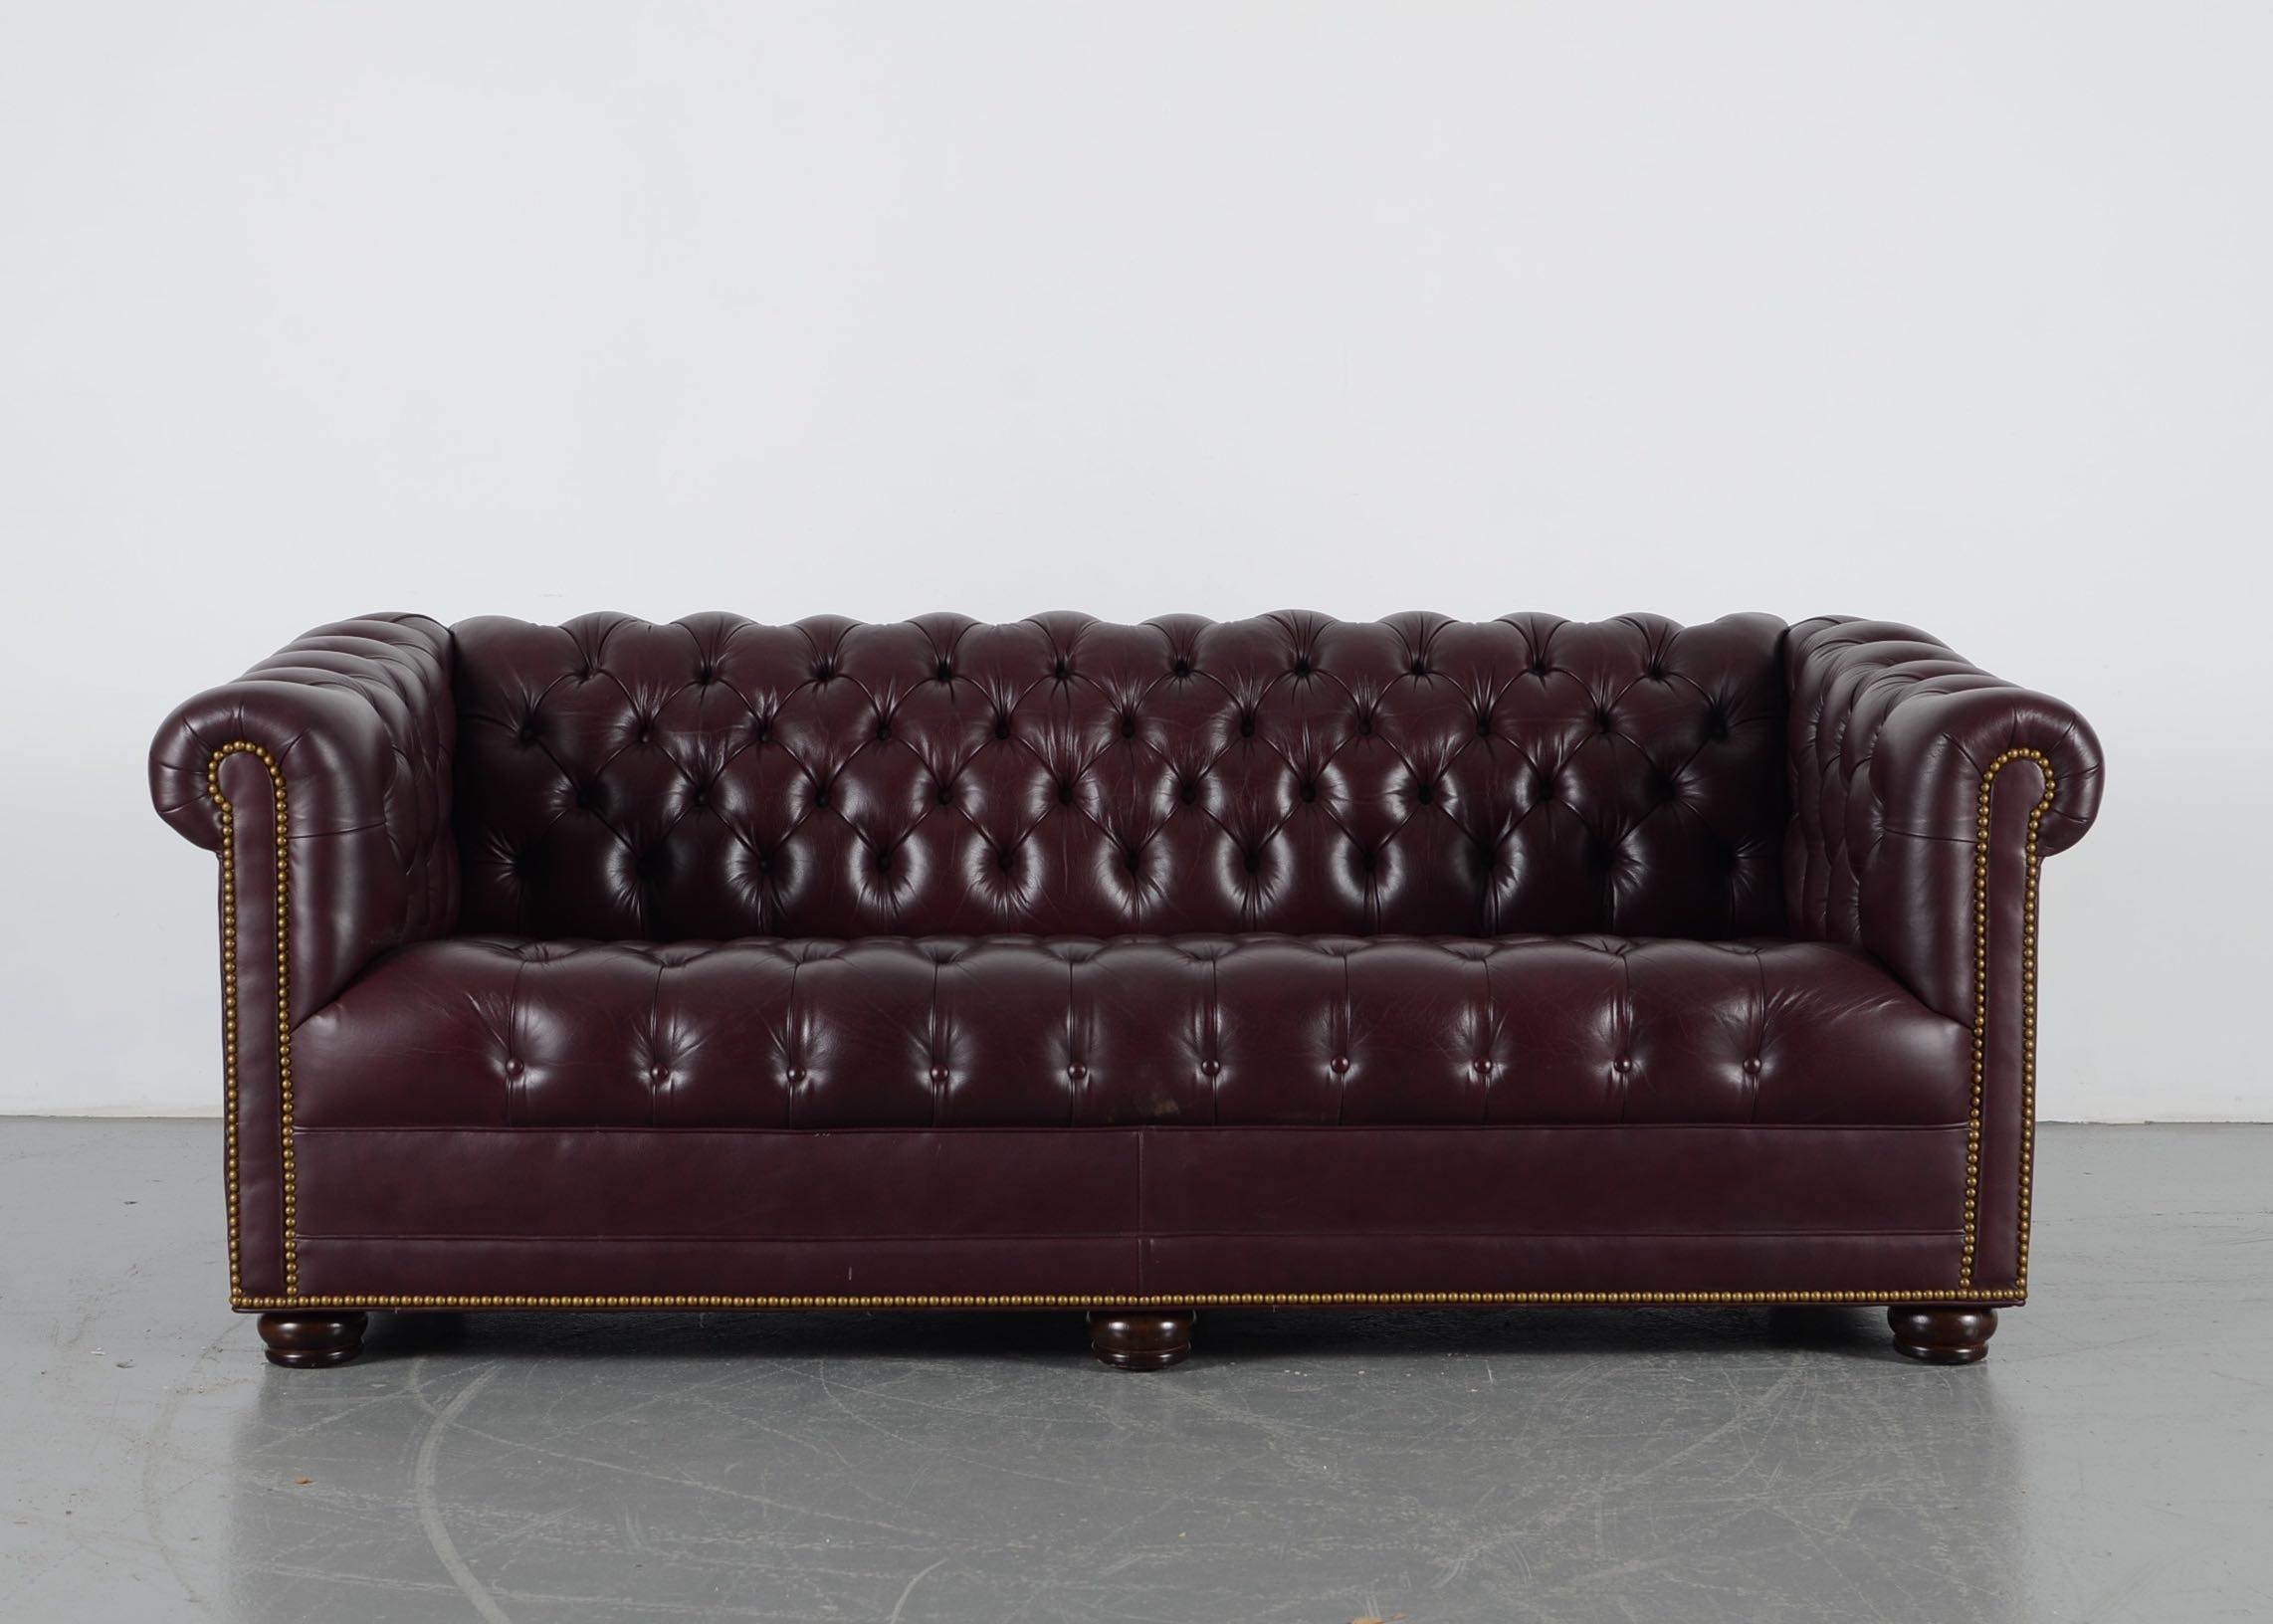 Hancock Moore Burgundy Tufted Leather Chesterfield Sofa Ebth